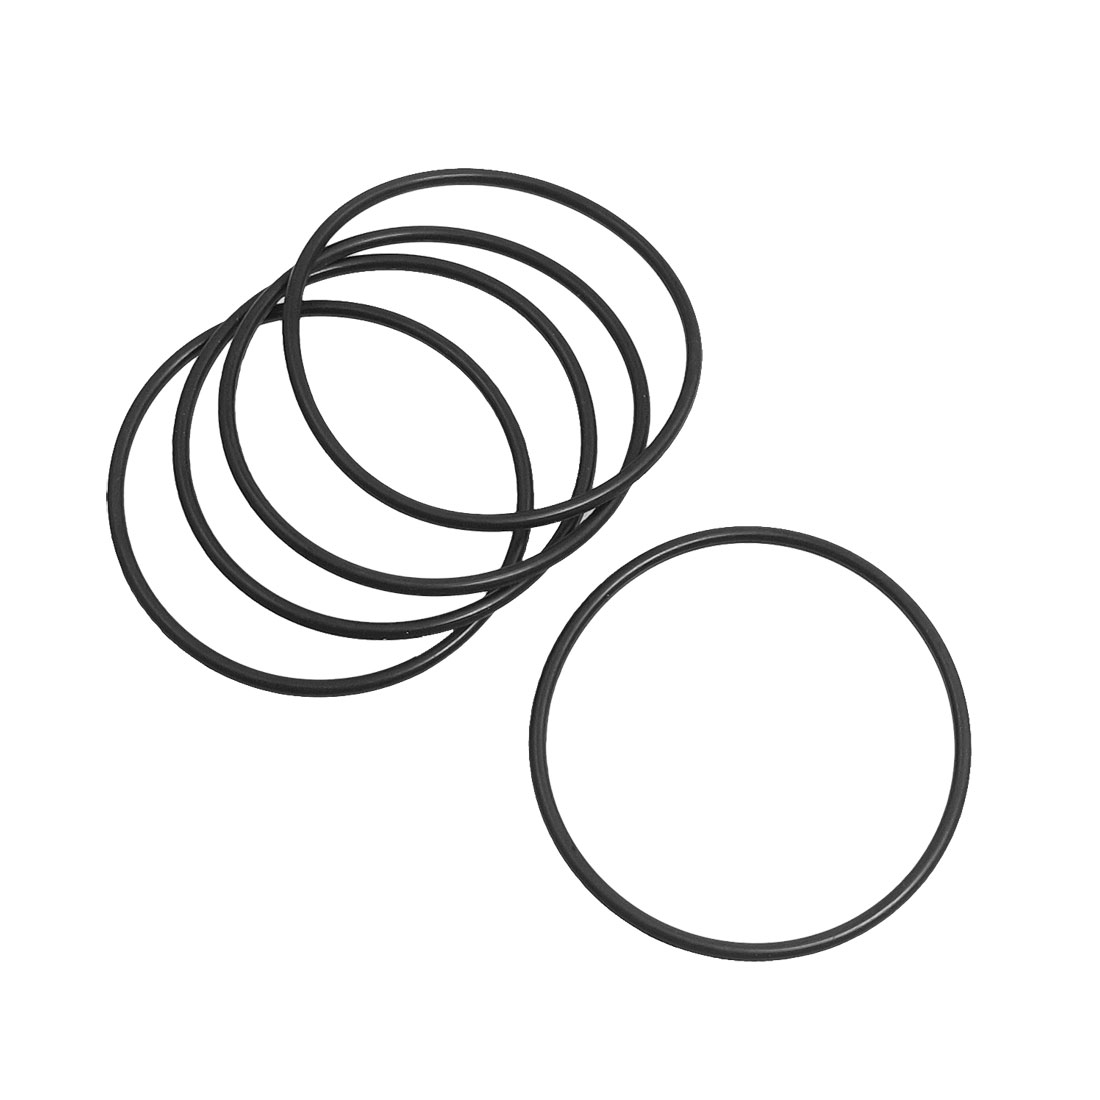 5 Pcs Rubber O Ring Oil Seal Gaskets for Makita HM0810 Electric Pick Gun Gear Box Bearing